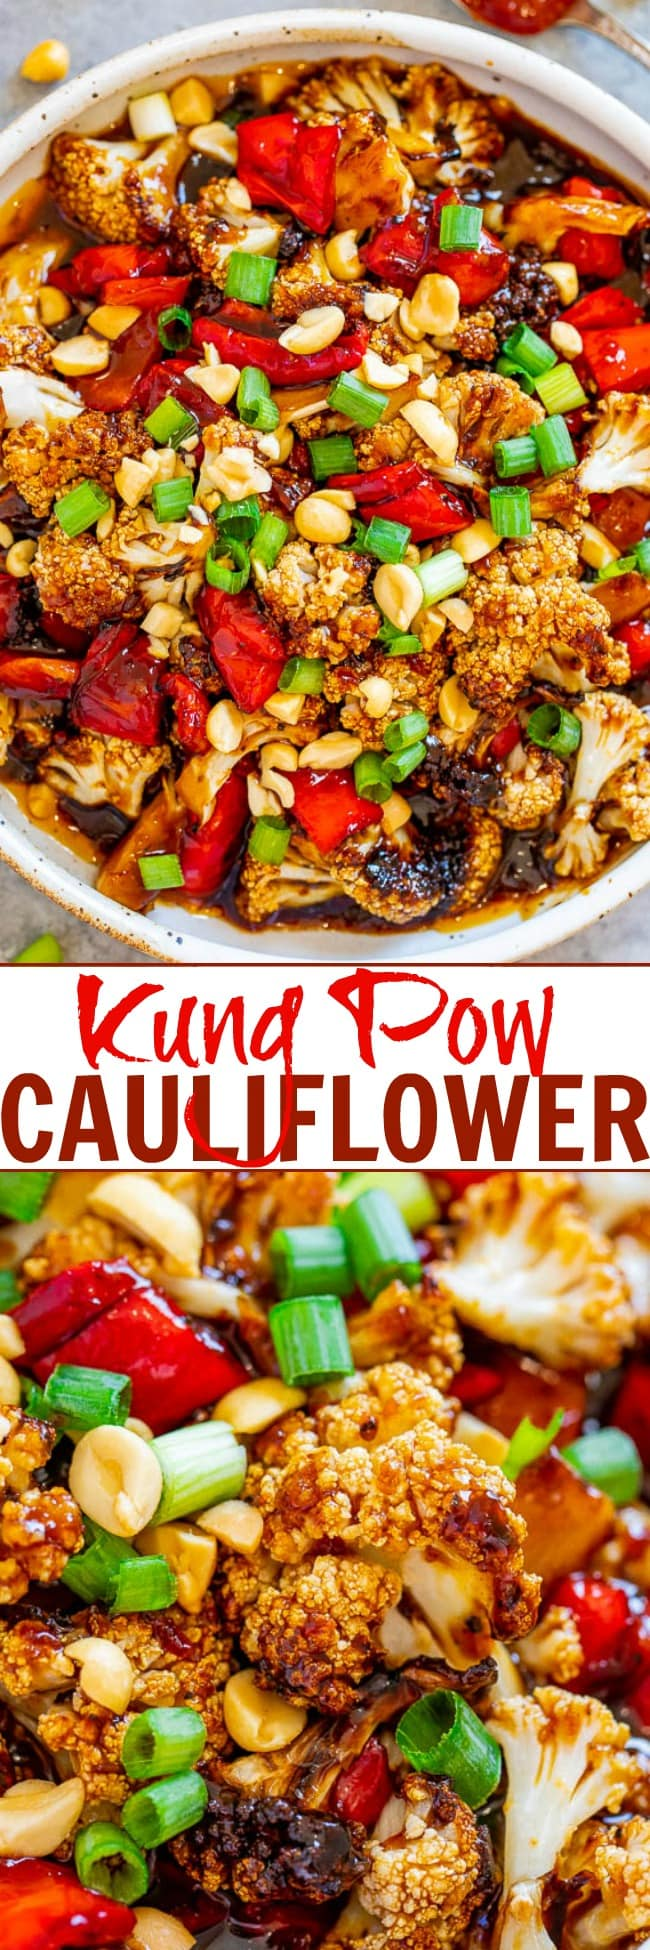 Kung Pao Cauliflower - An EASY recipe that has salty-sweet-tangy-spicy flavors all in one!! Don't call for takeout when you can make this HEALTHY dish at home in 20 minutes! You won't believe how AUTHENTIC it tastes!!